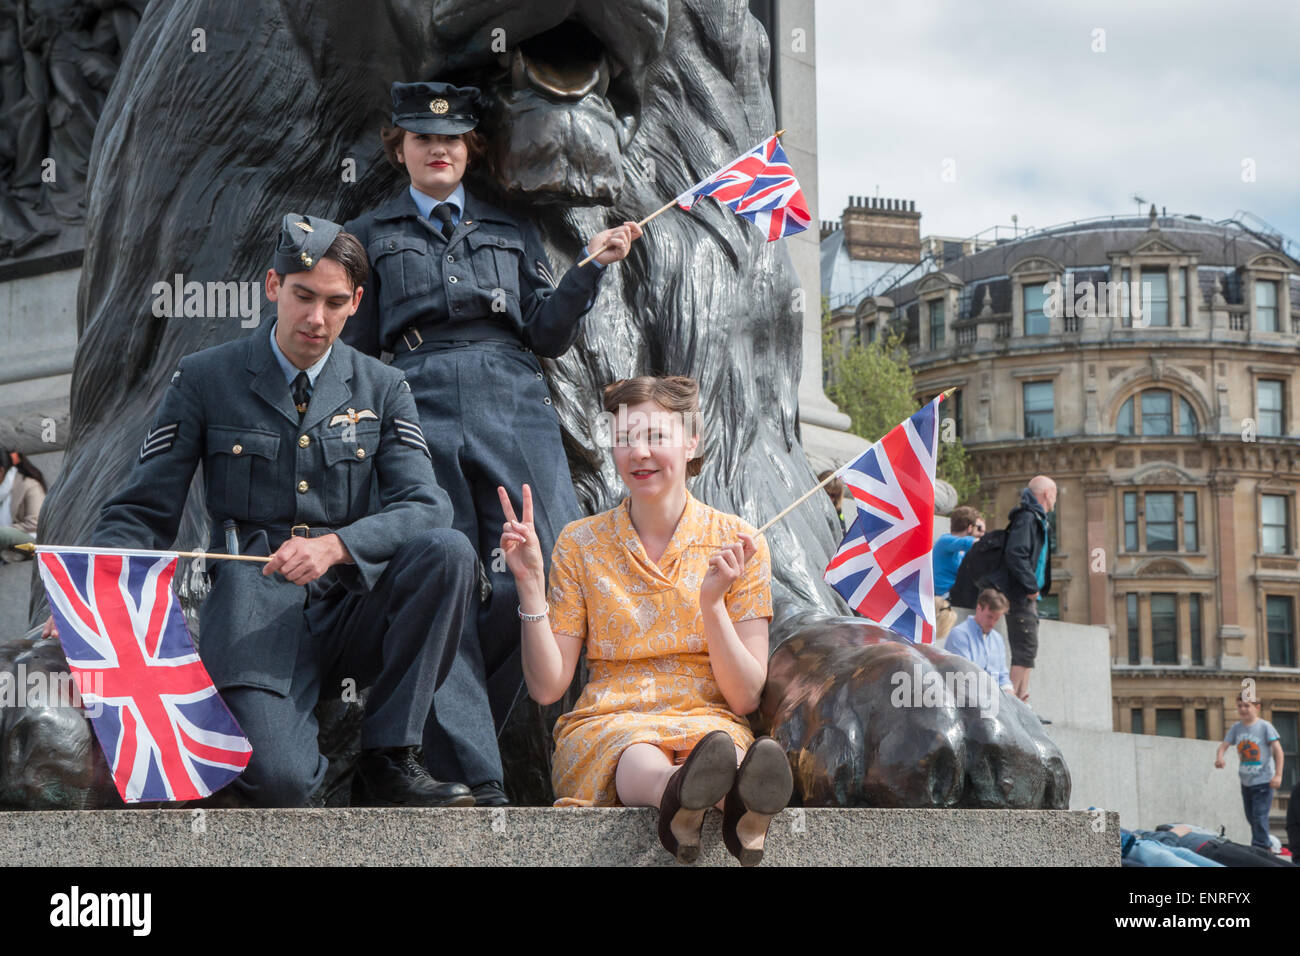 London, UK. 10th May, 2015. Re-enactors mark the 70th anniversary of VE Day Credit:  Zefrog/Alamy Live News Stock Photo